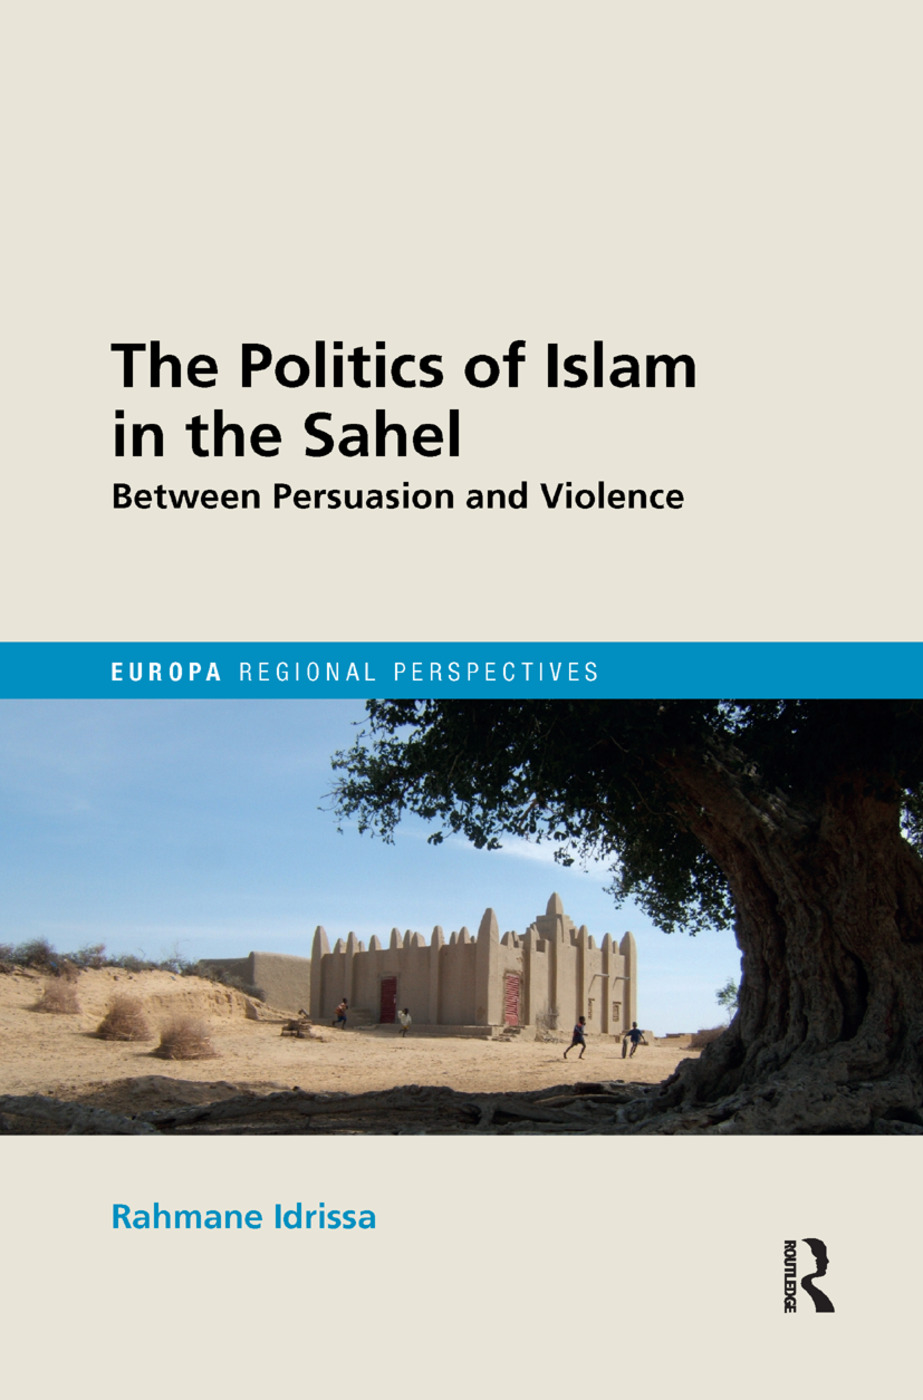 The Politics of Islam in the Sahel: Between Persuasion and Violence book cover